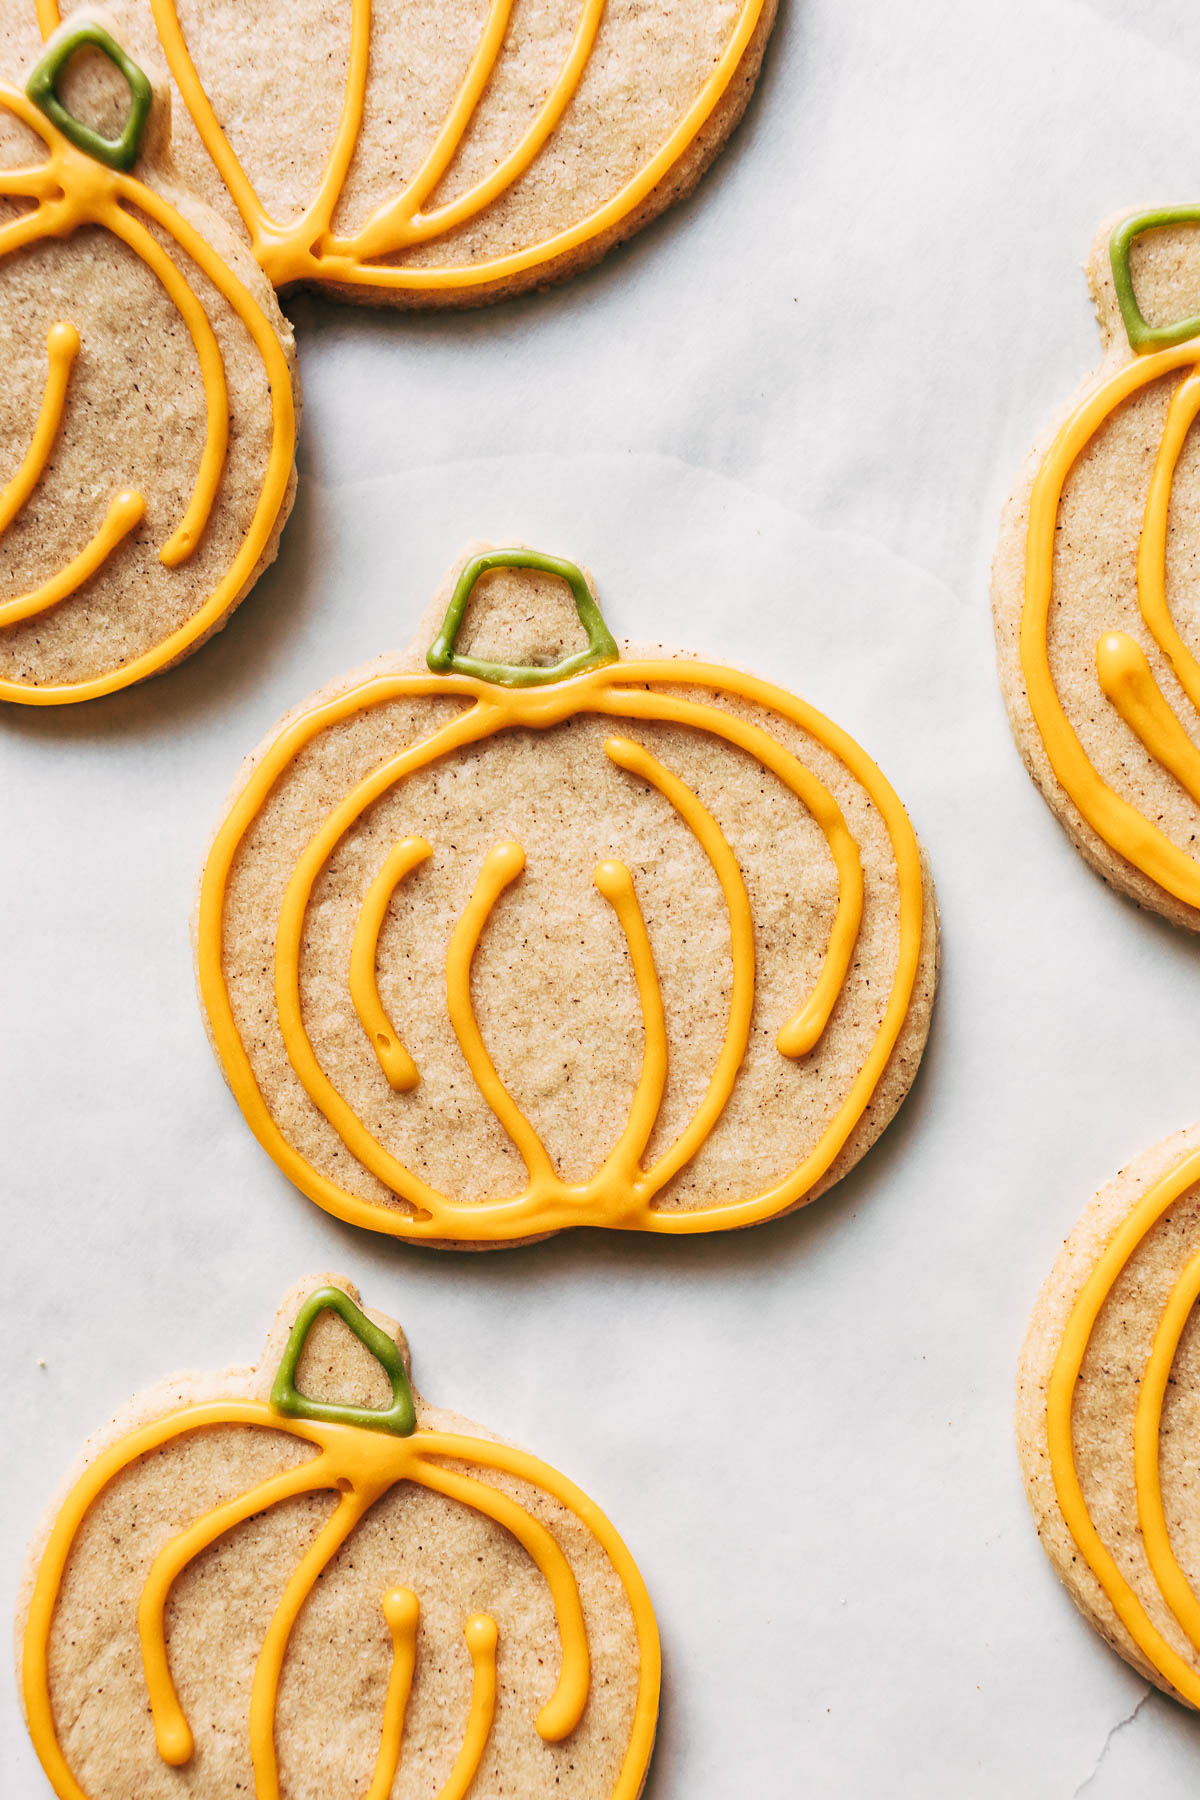 Close up of decorated cookies on white parchment paper.